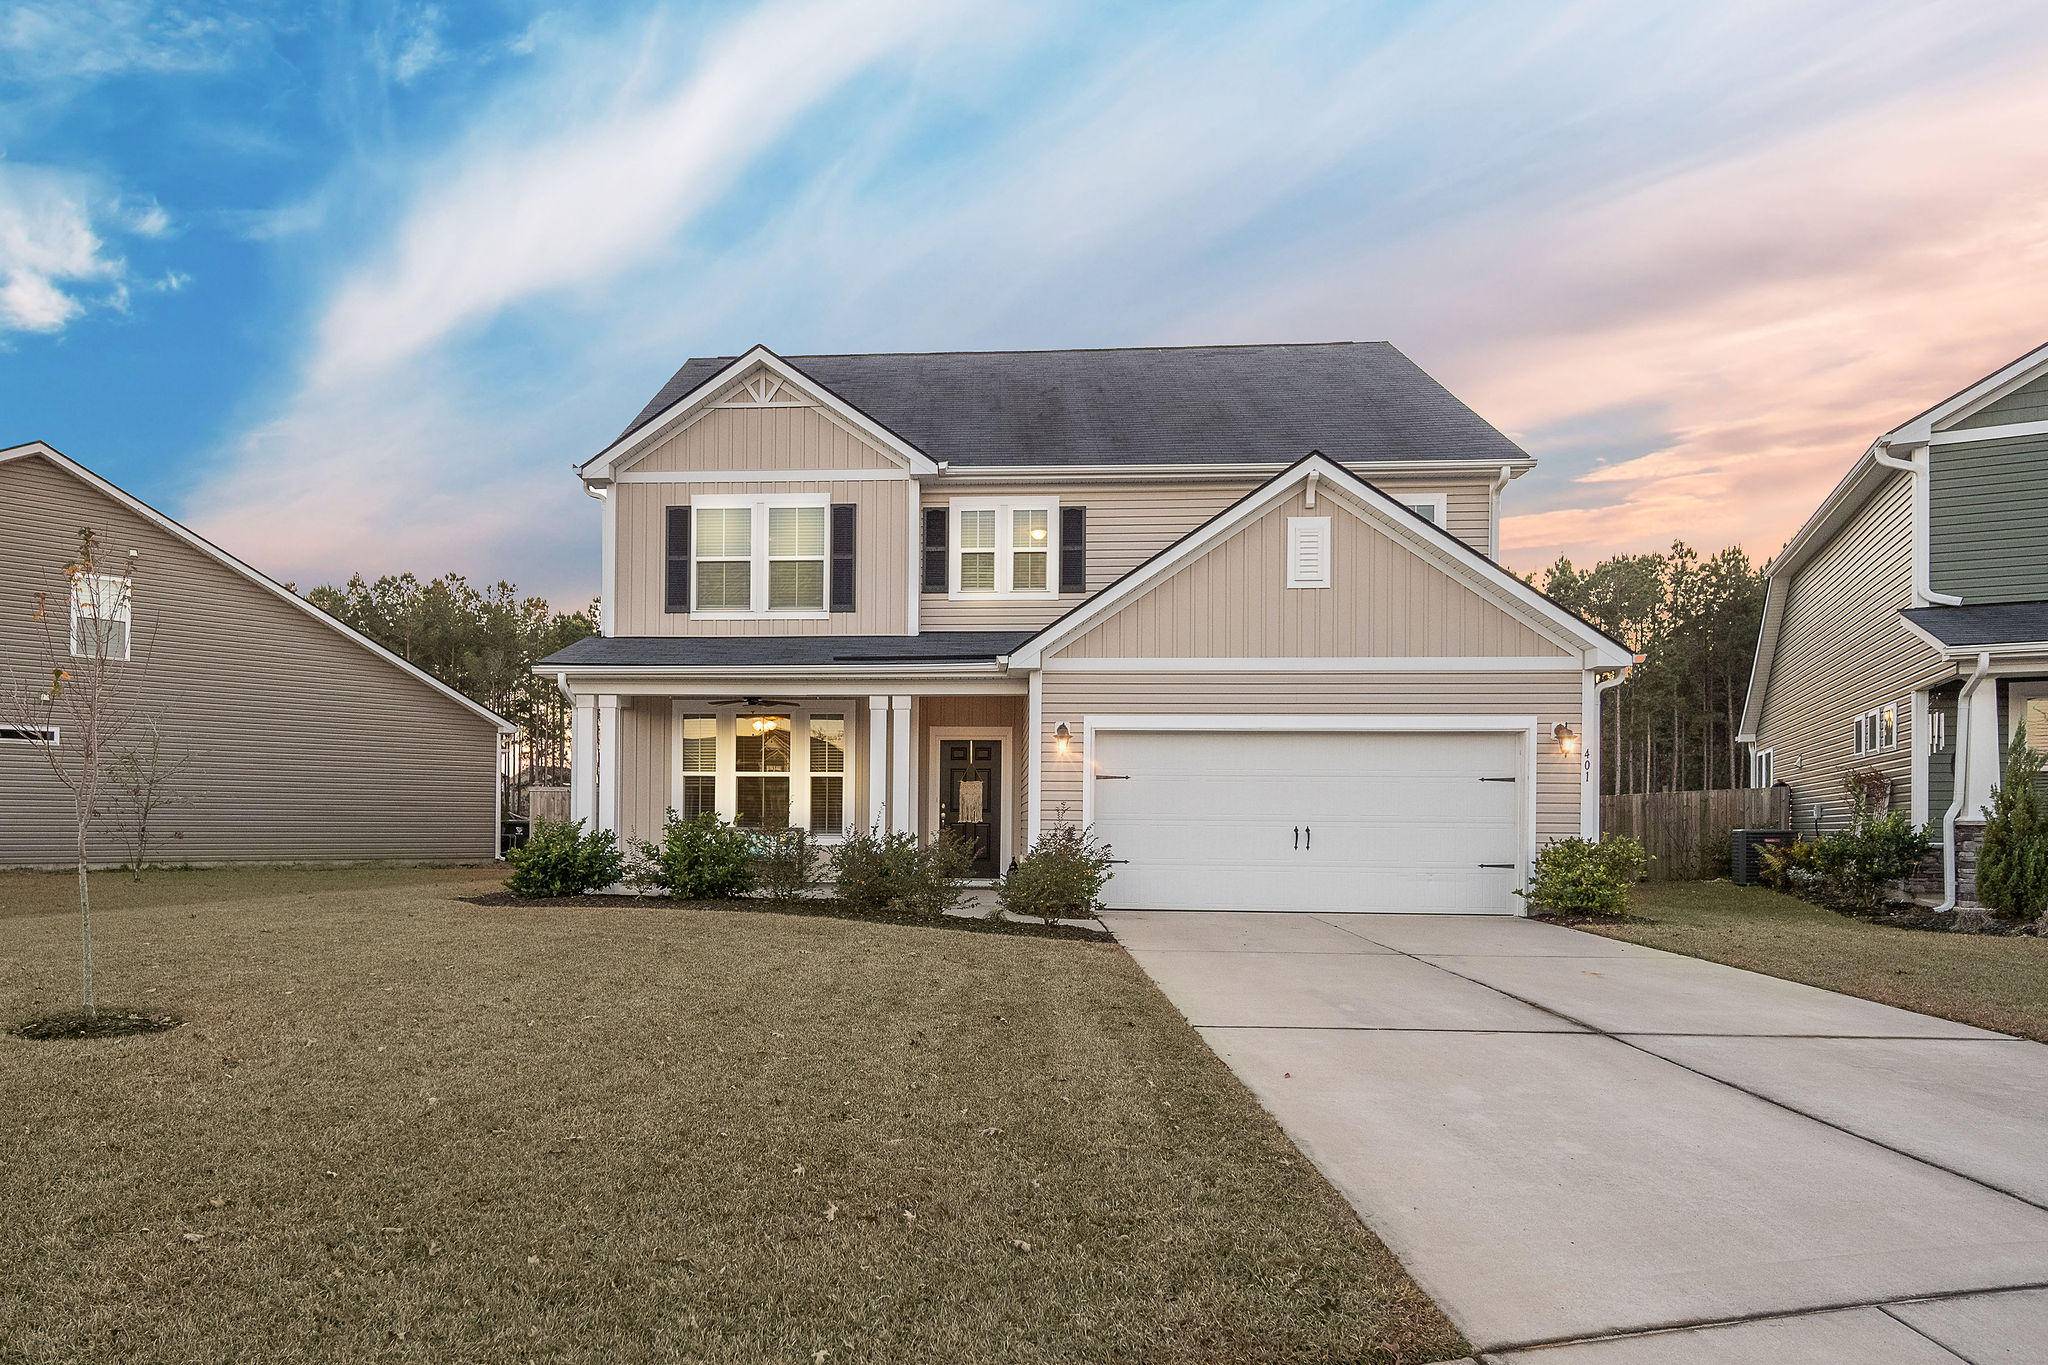 401 Huckleberry Court Summerville, SC 29486